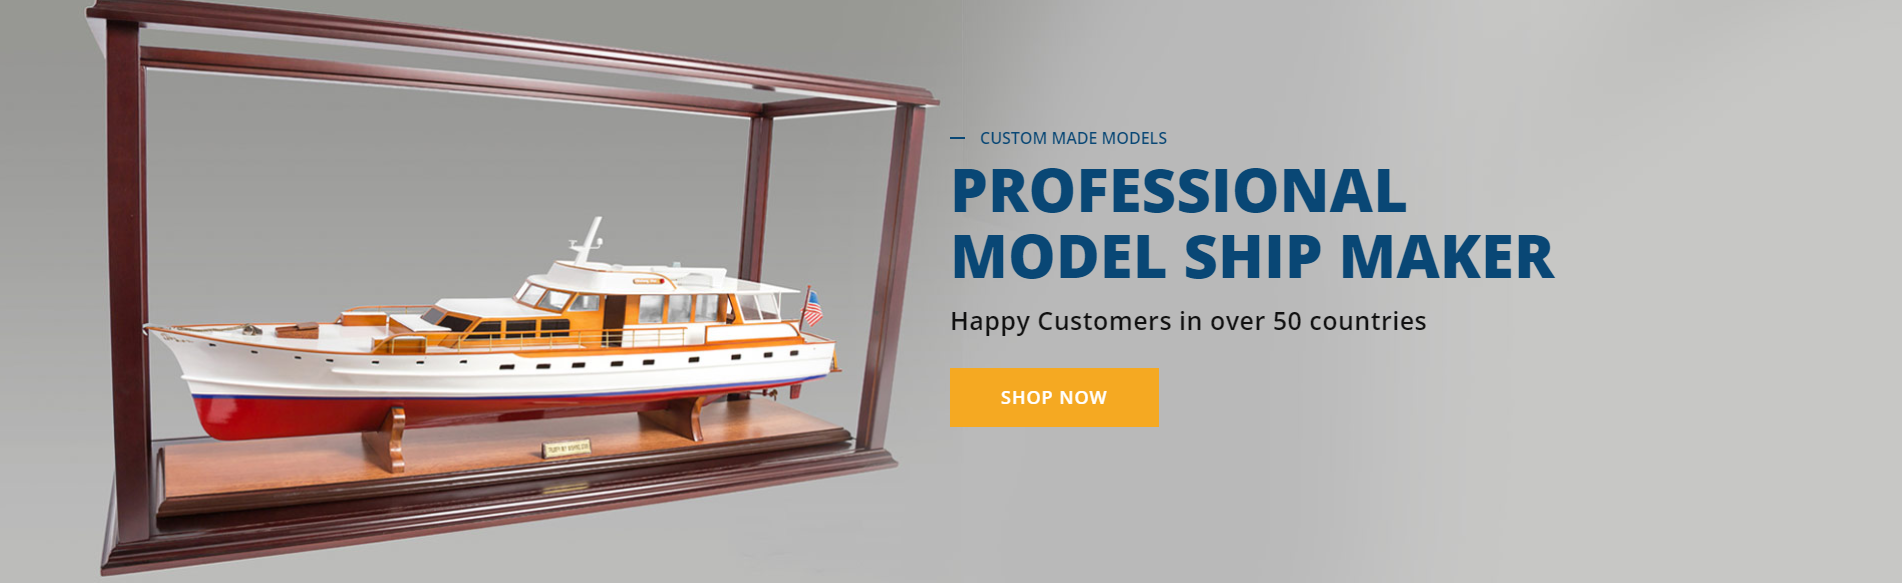 Professional Model Ship Builders | Handcrafted Model Ships | Seacraft Gallery